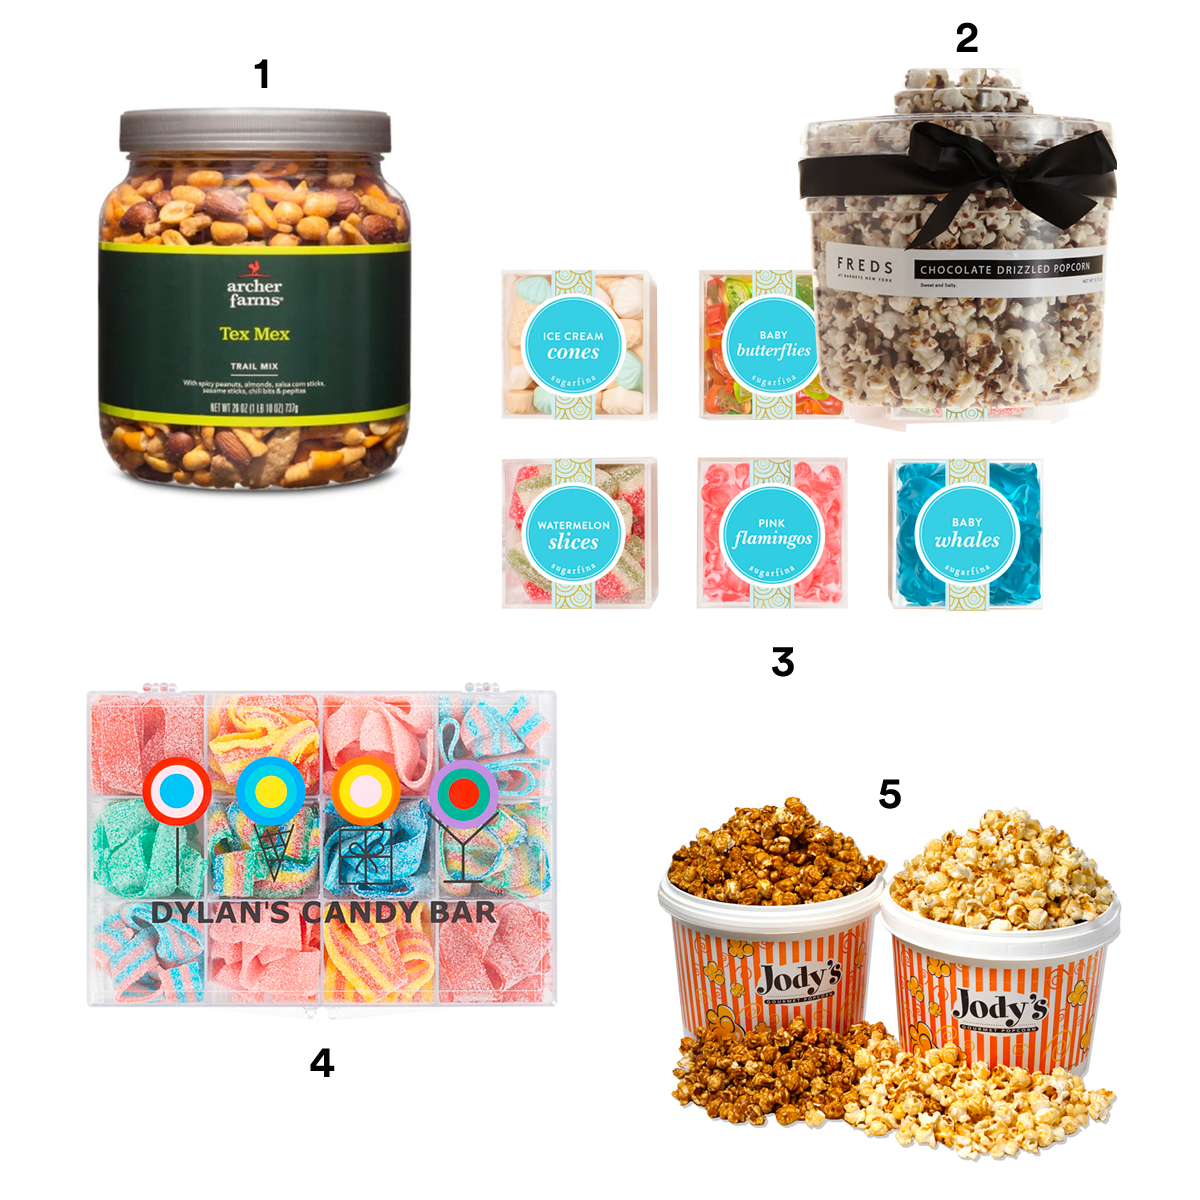 1) ARCHER FARMS Tex Mex Trail Mix, available at Target. 2) FREDS AT BARNEYS NEW YORK Chocolate-Drizzled Popcorn Tub, available at Barneys New York. 3) SUGARFINA Set of 6 Summer Fun Candy Cubes, available at Nordstrom. 4) DYLAN'S CANDY BAR Sour Belts Tackle Box, available at Nordstrom. 5) JODY'S Gourmet Popcorn, available at Bed Bath & Beyond.